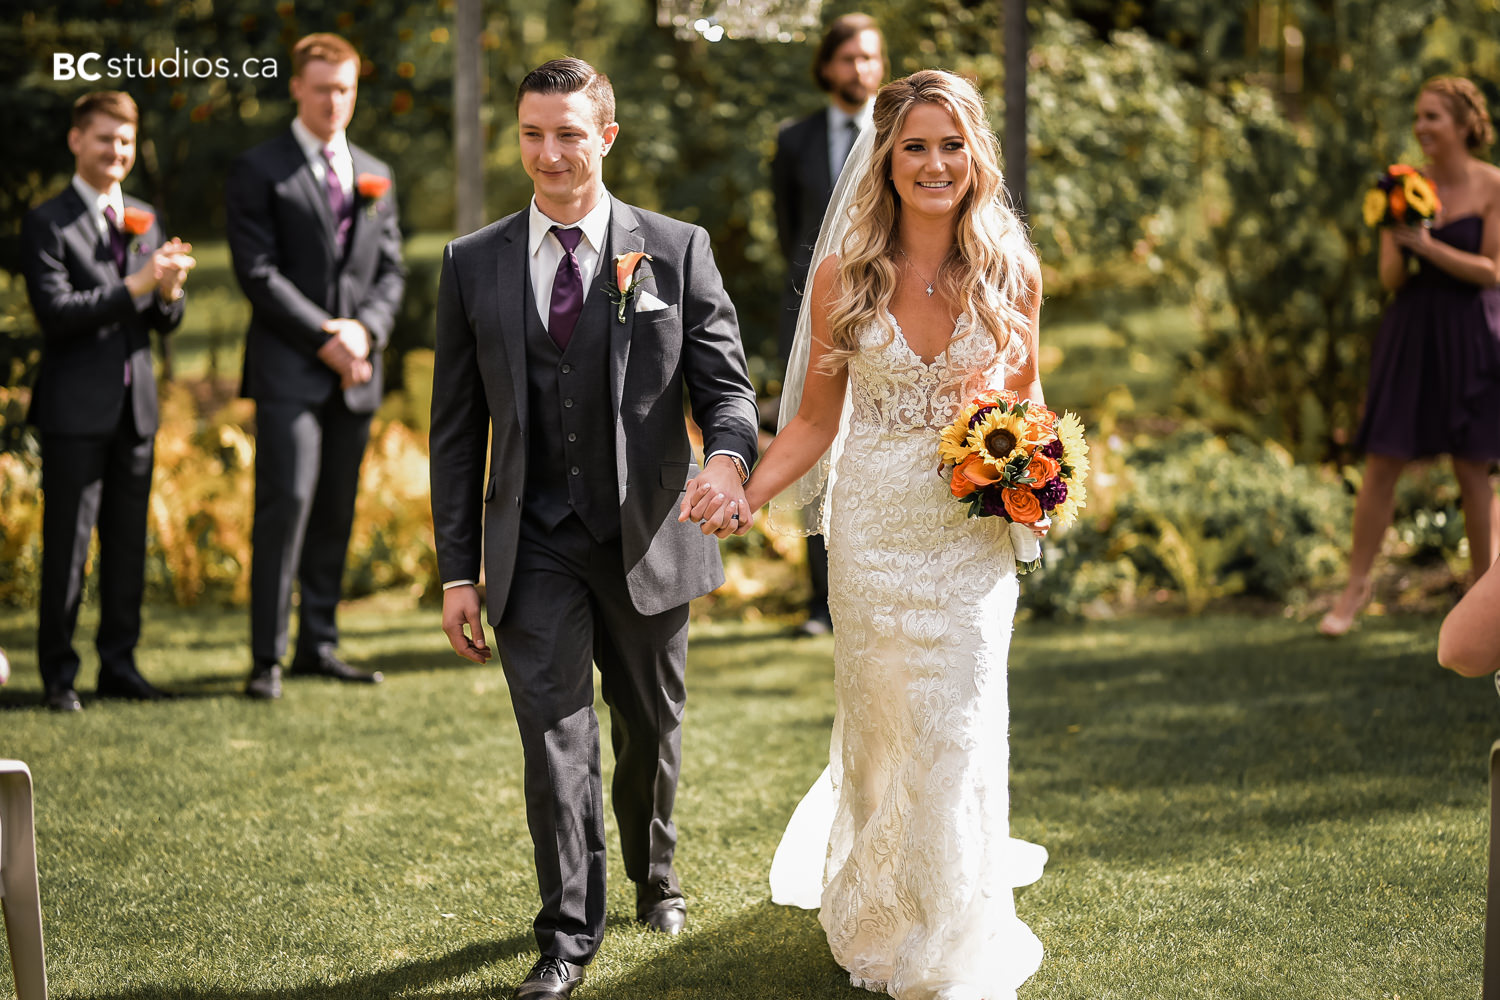 Fall wedding at GrGardens Bed and Breakfast